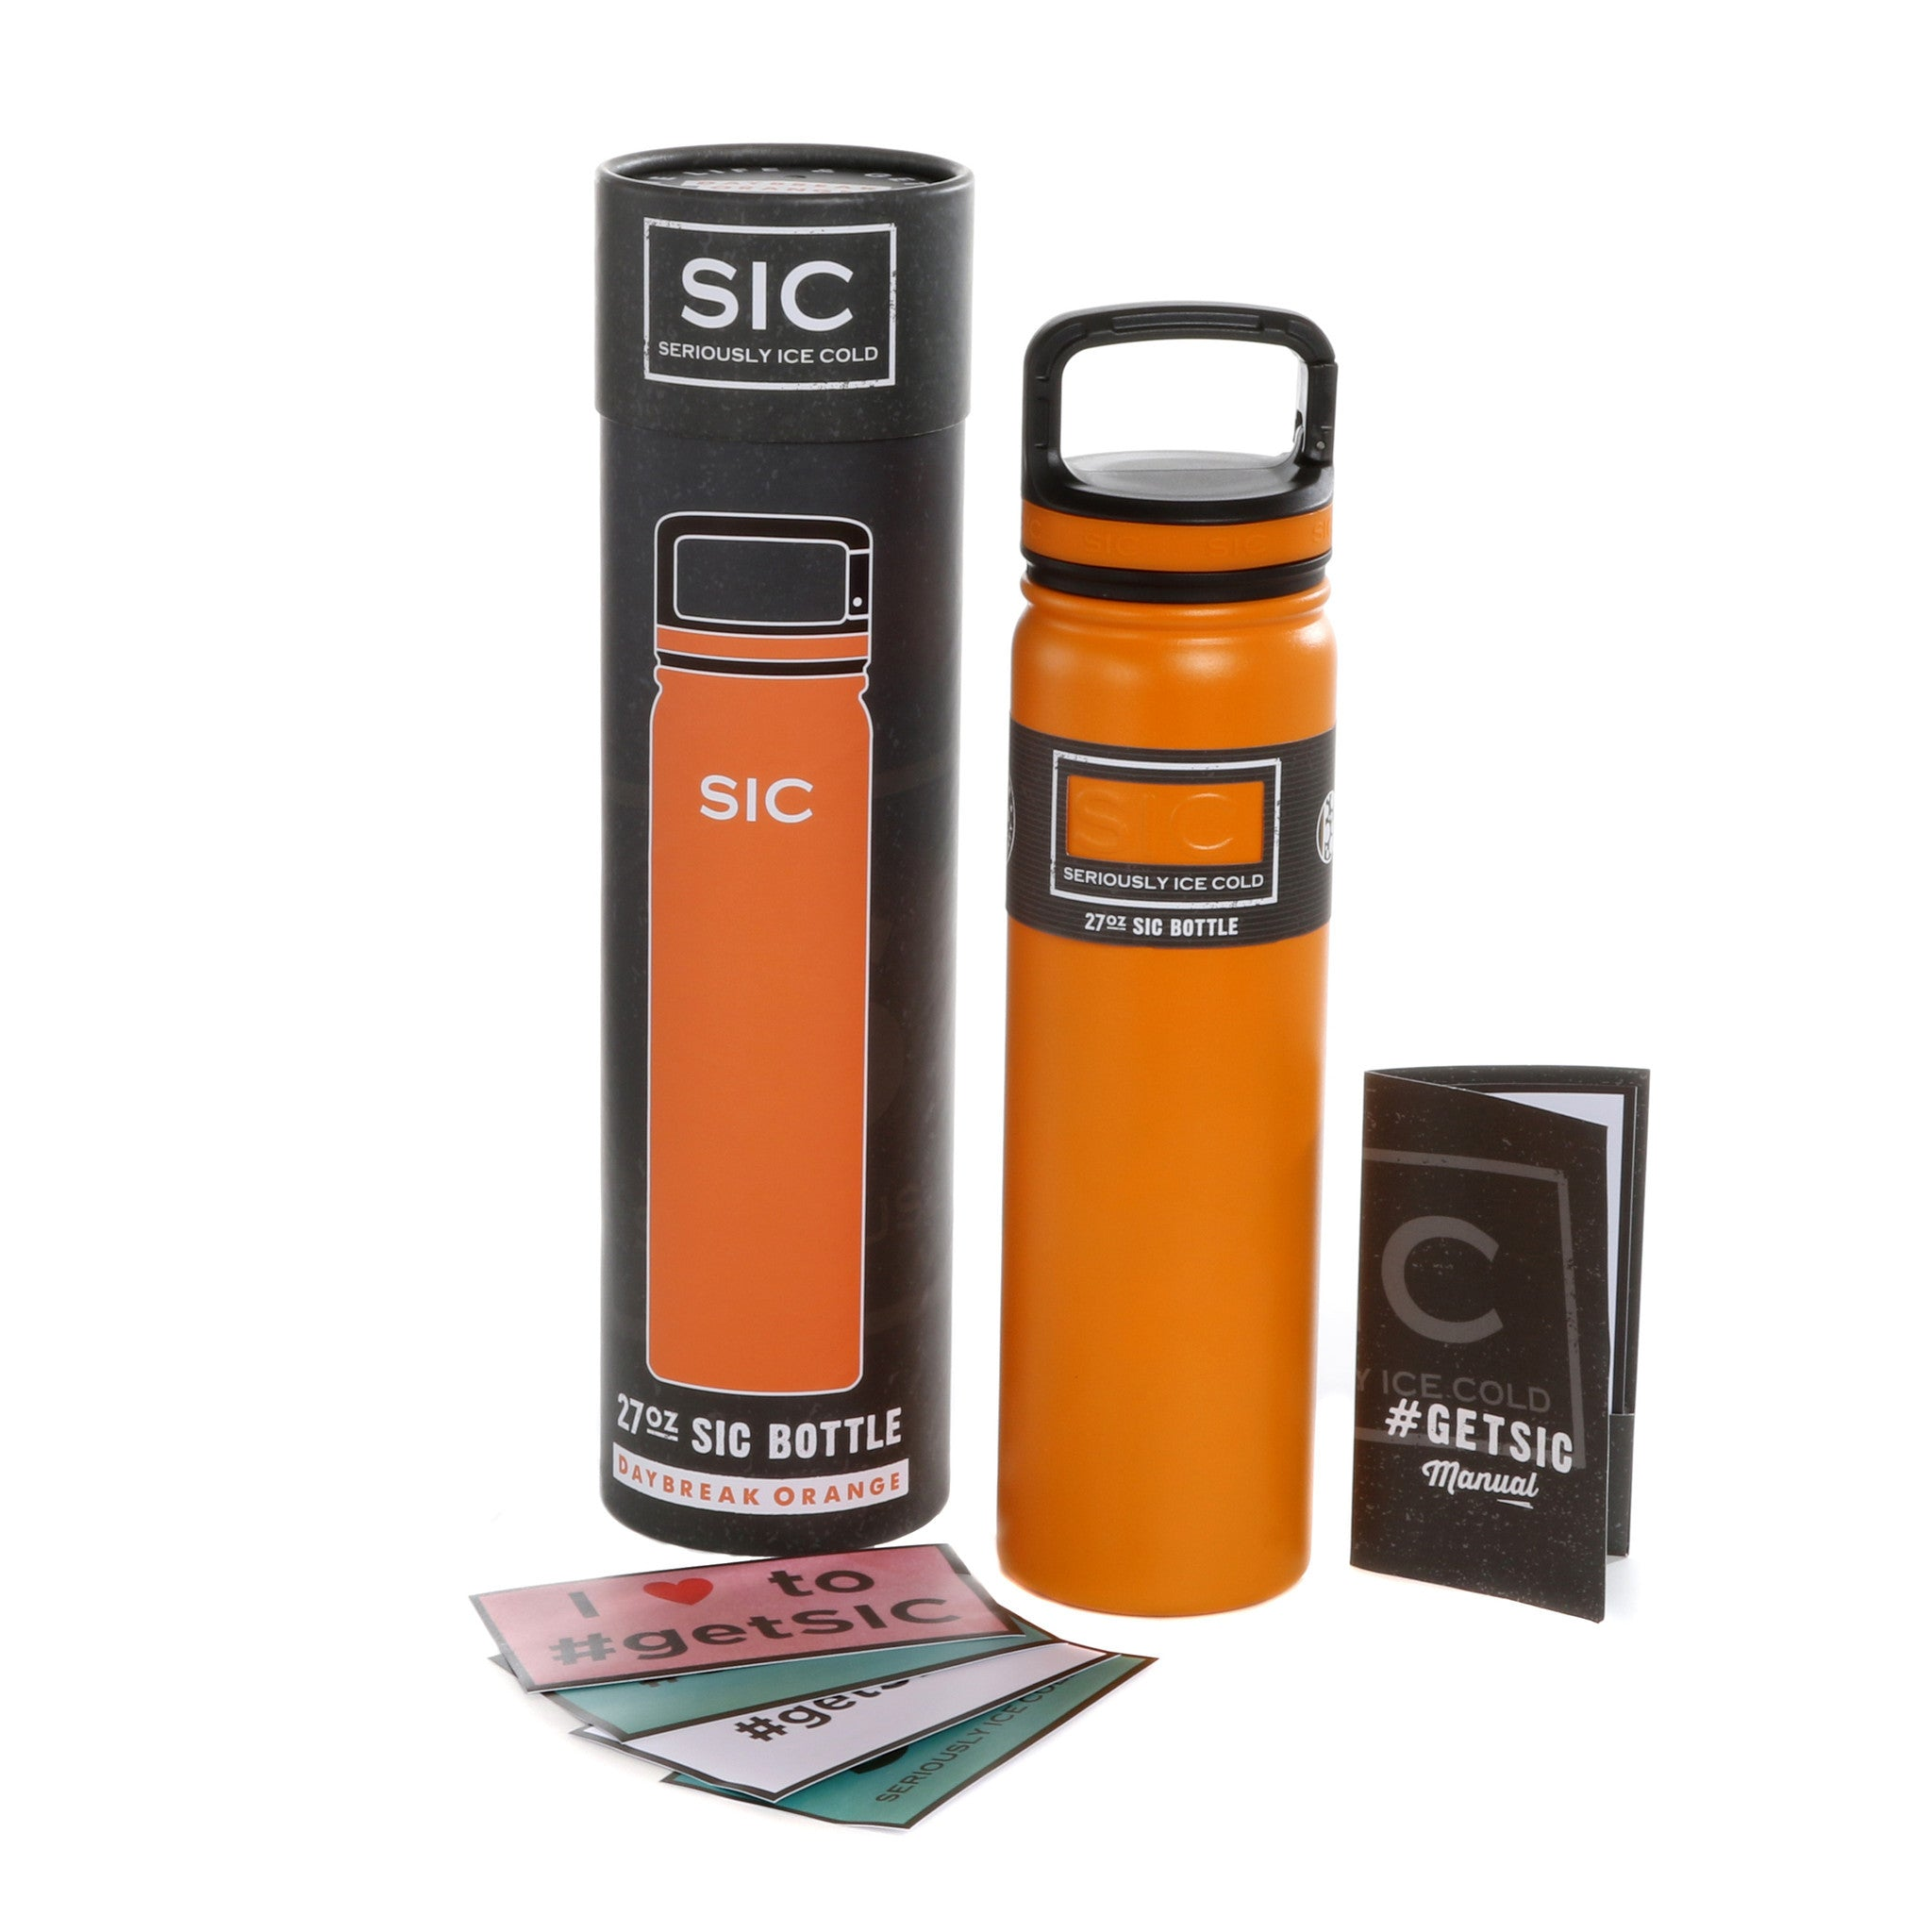 27 Oz Daybreak Orange SIC Bottle with built in Carabiner Lid